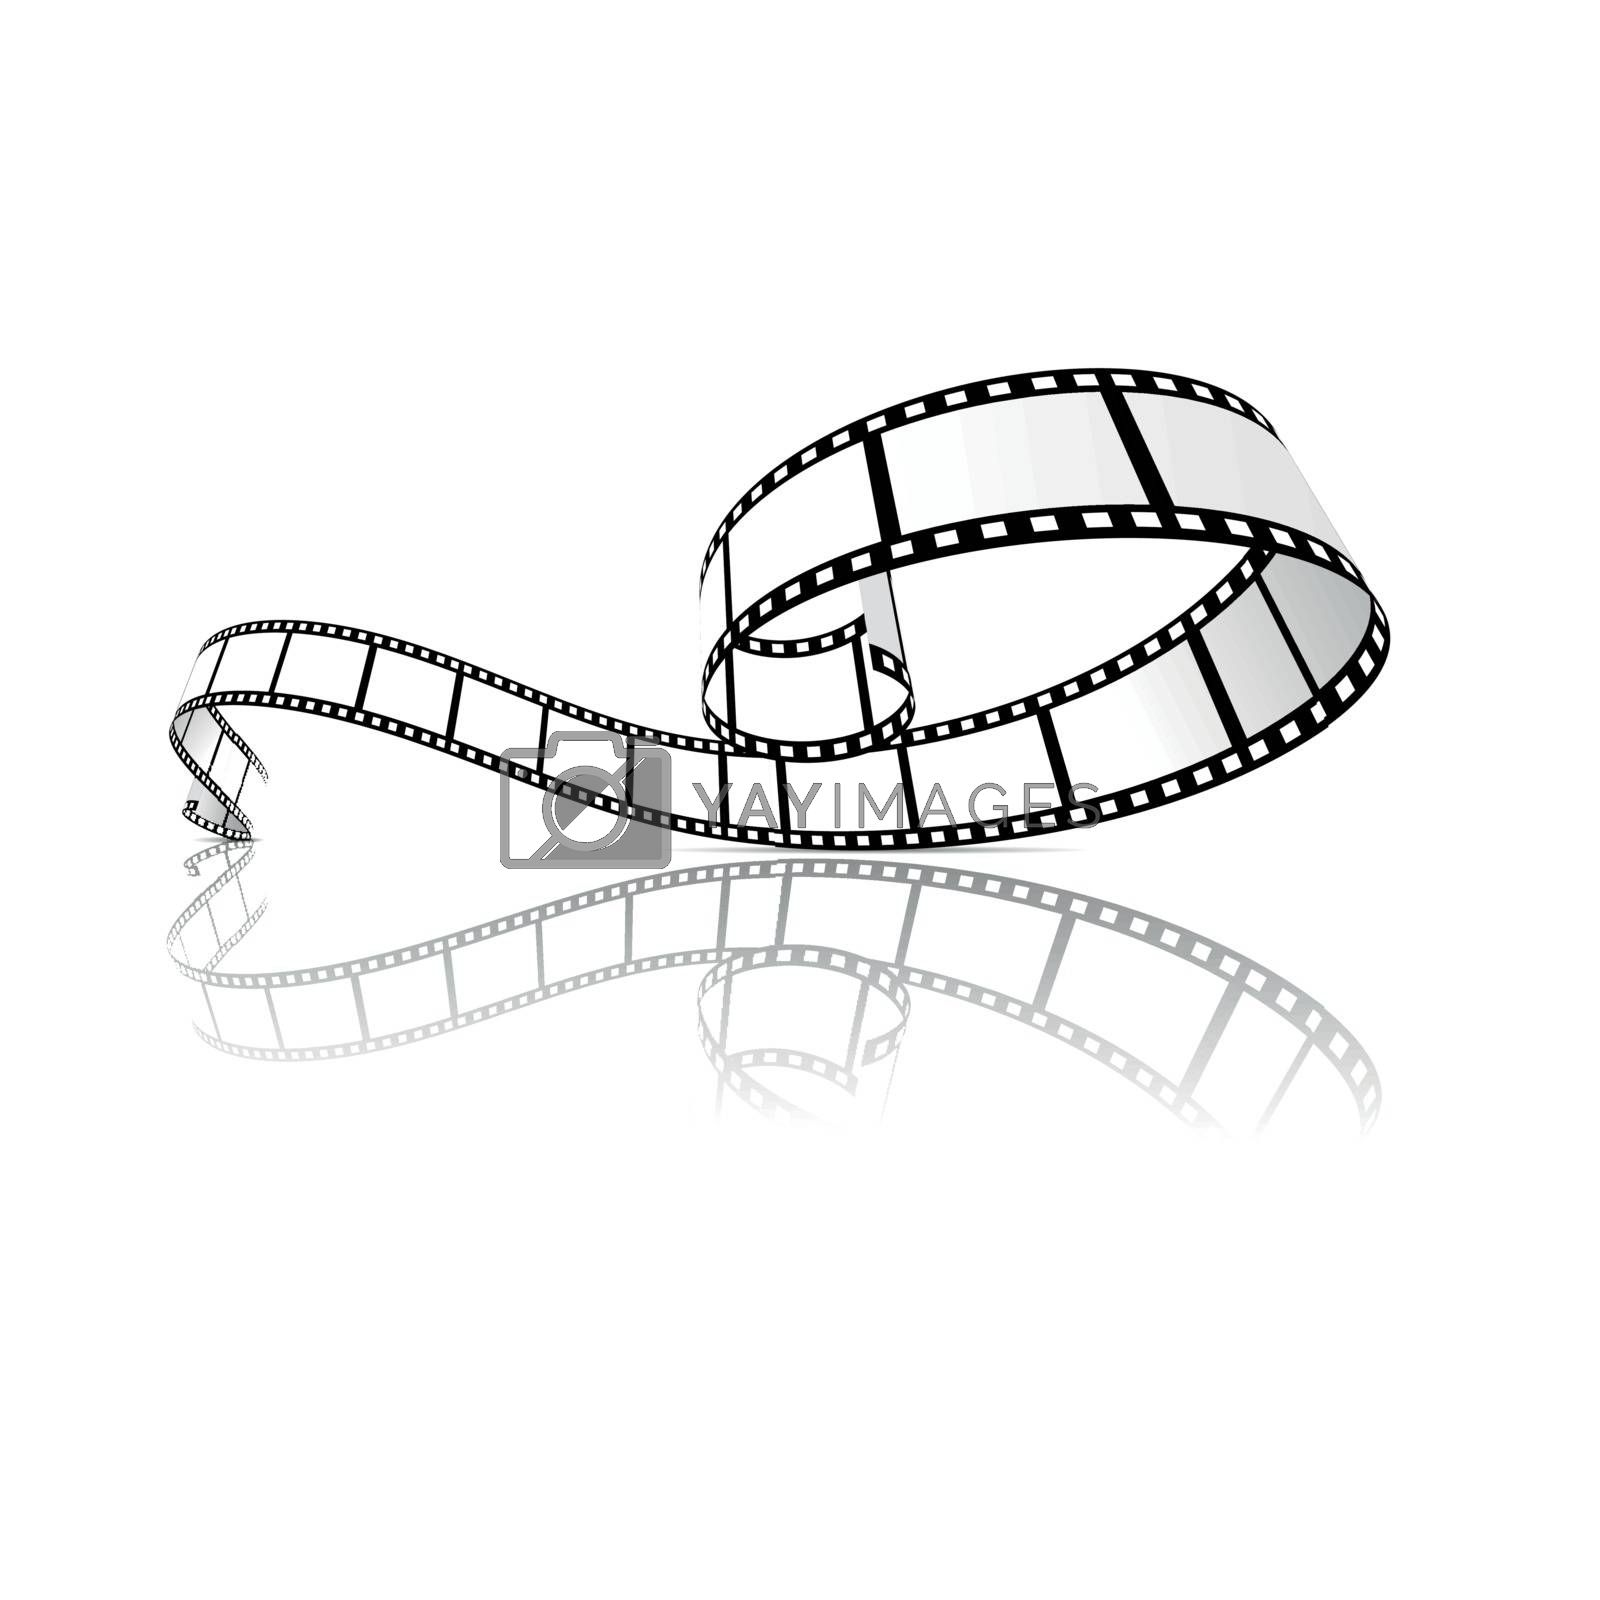 Royalty free image of Film strip vector illustration by sermax55